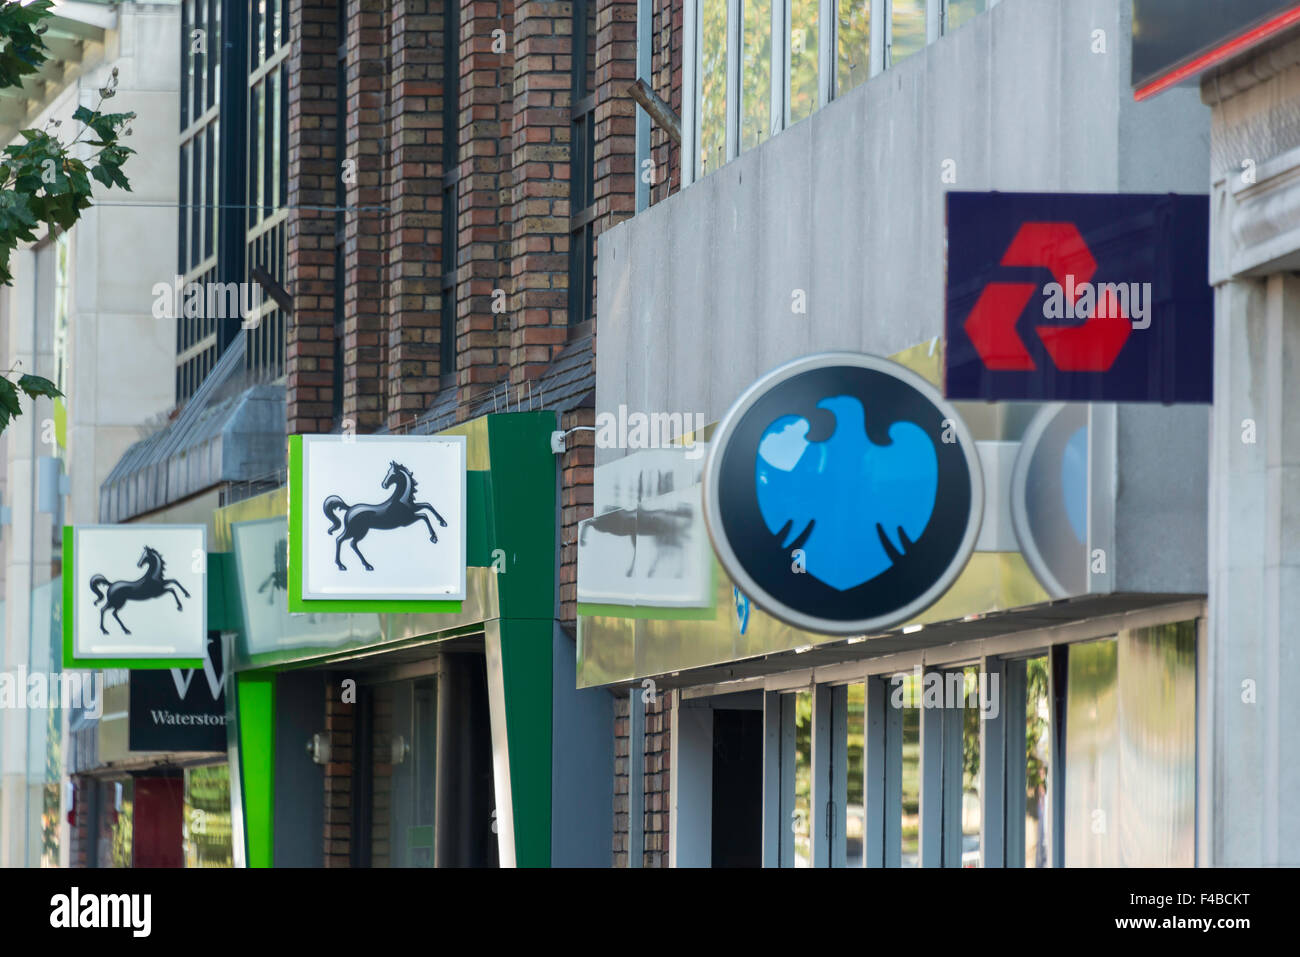 Row of retail banks, High Street, Staines-upon-Thames, Surrey, England, United Kingdom - Stock Image